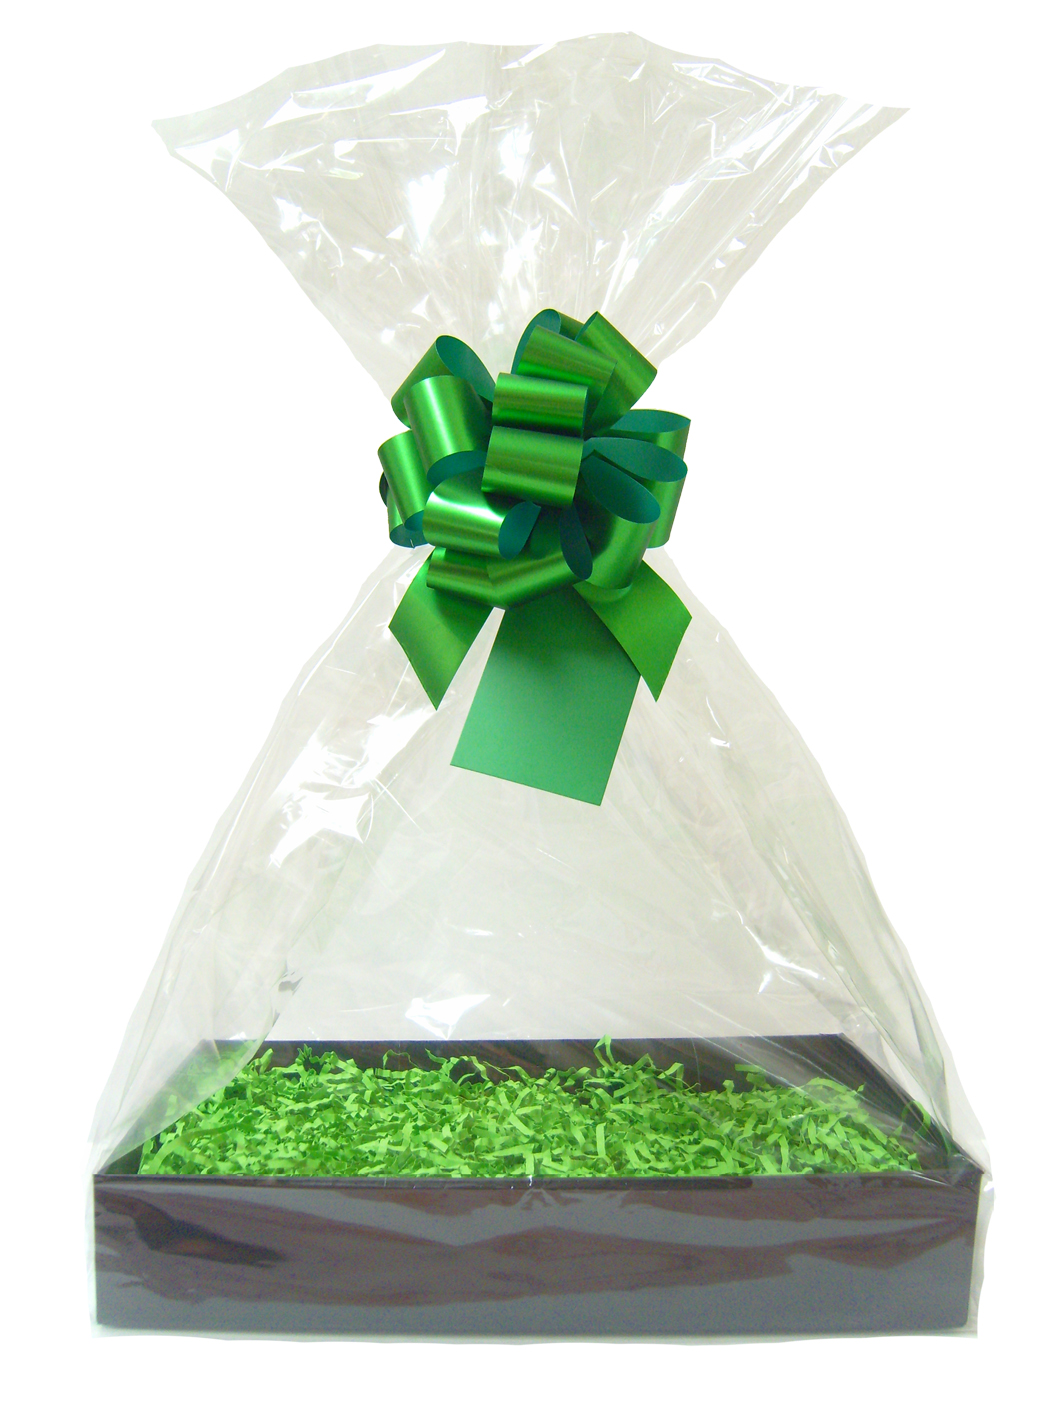 Complete Gift Basket Kit - (Small) BLACK EASY FOLD TRAY/GREEN ACCESSORIES